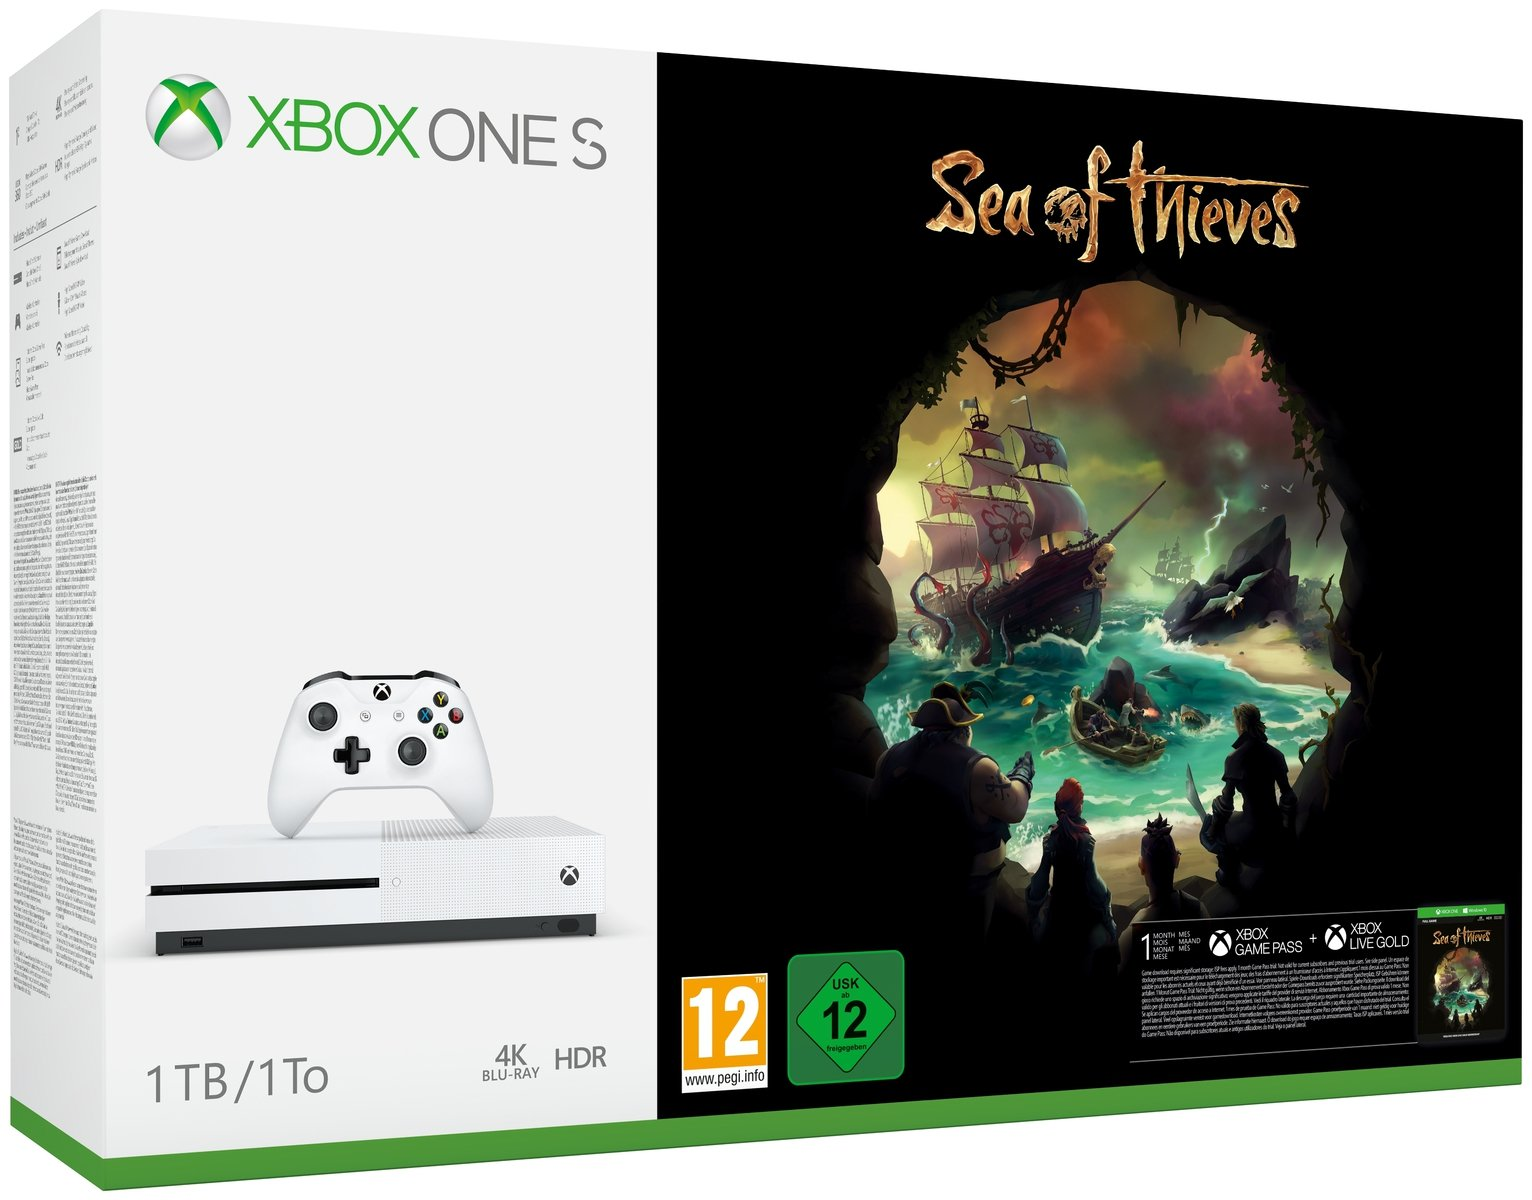 Xbox One S 1TB Console and Sea of Thieves Bundle